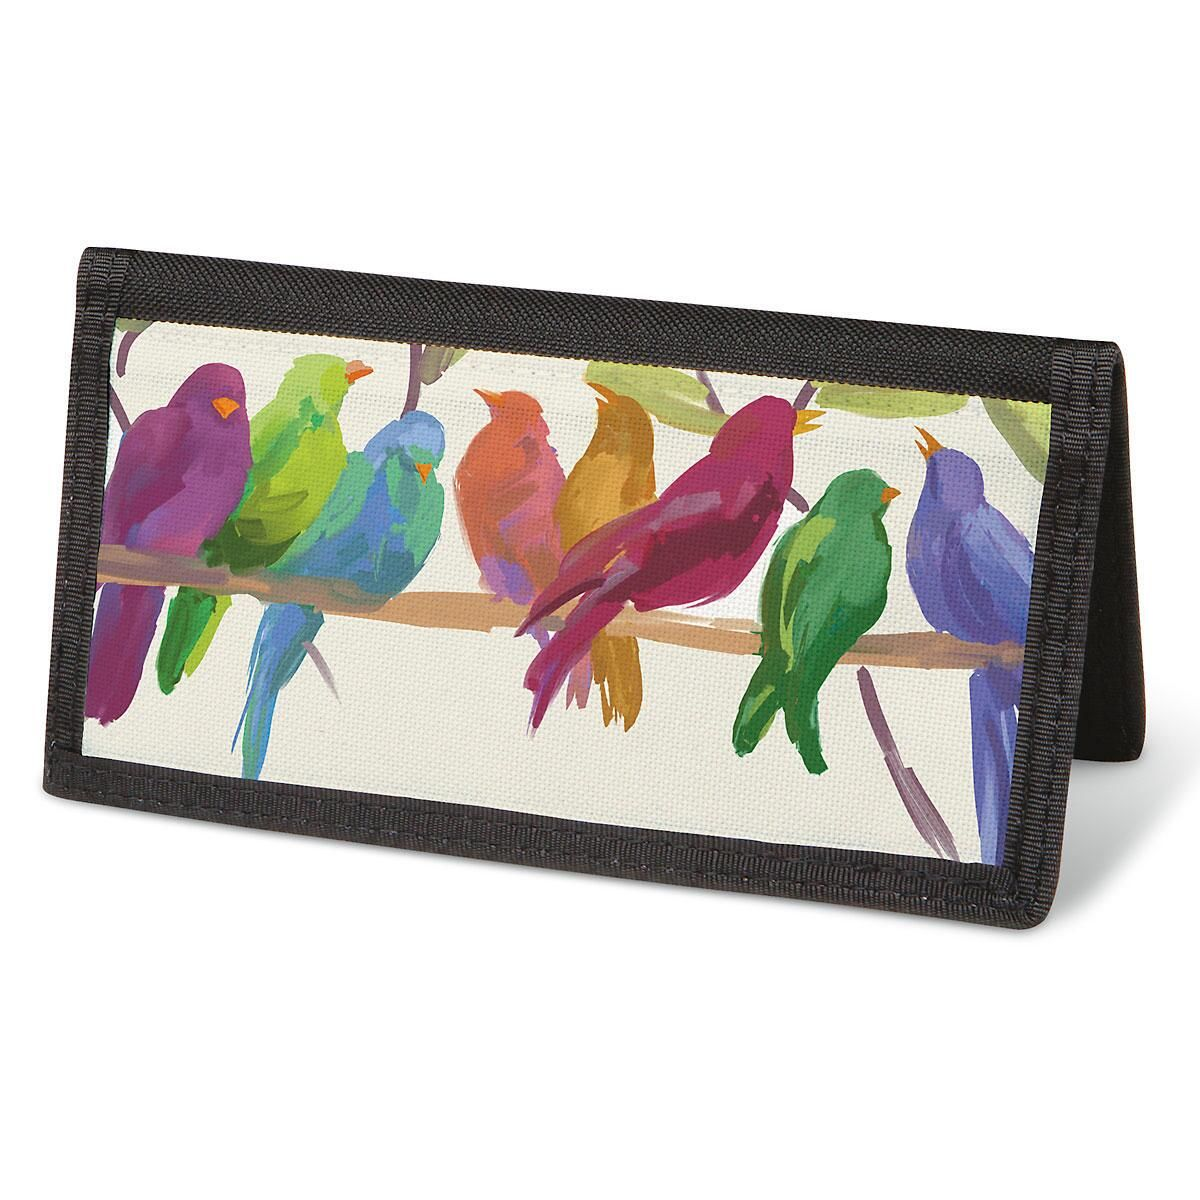 Flocked Together  Checkbook Cover - Non-Personalized